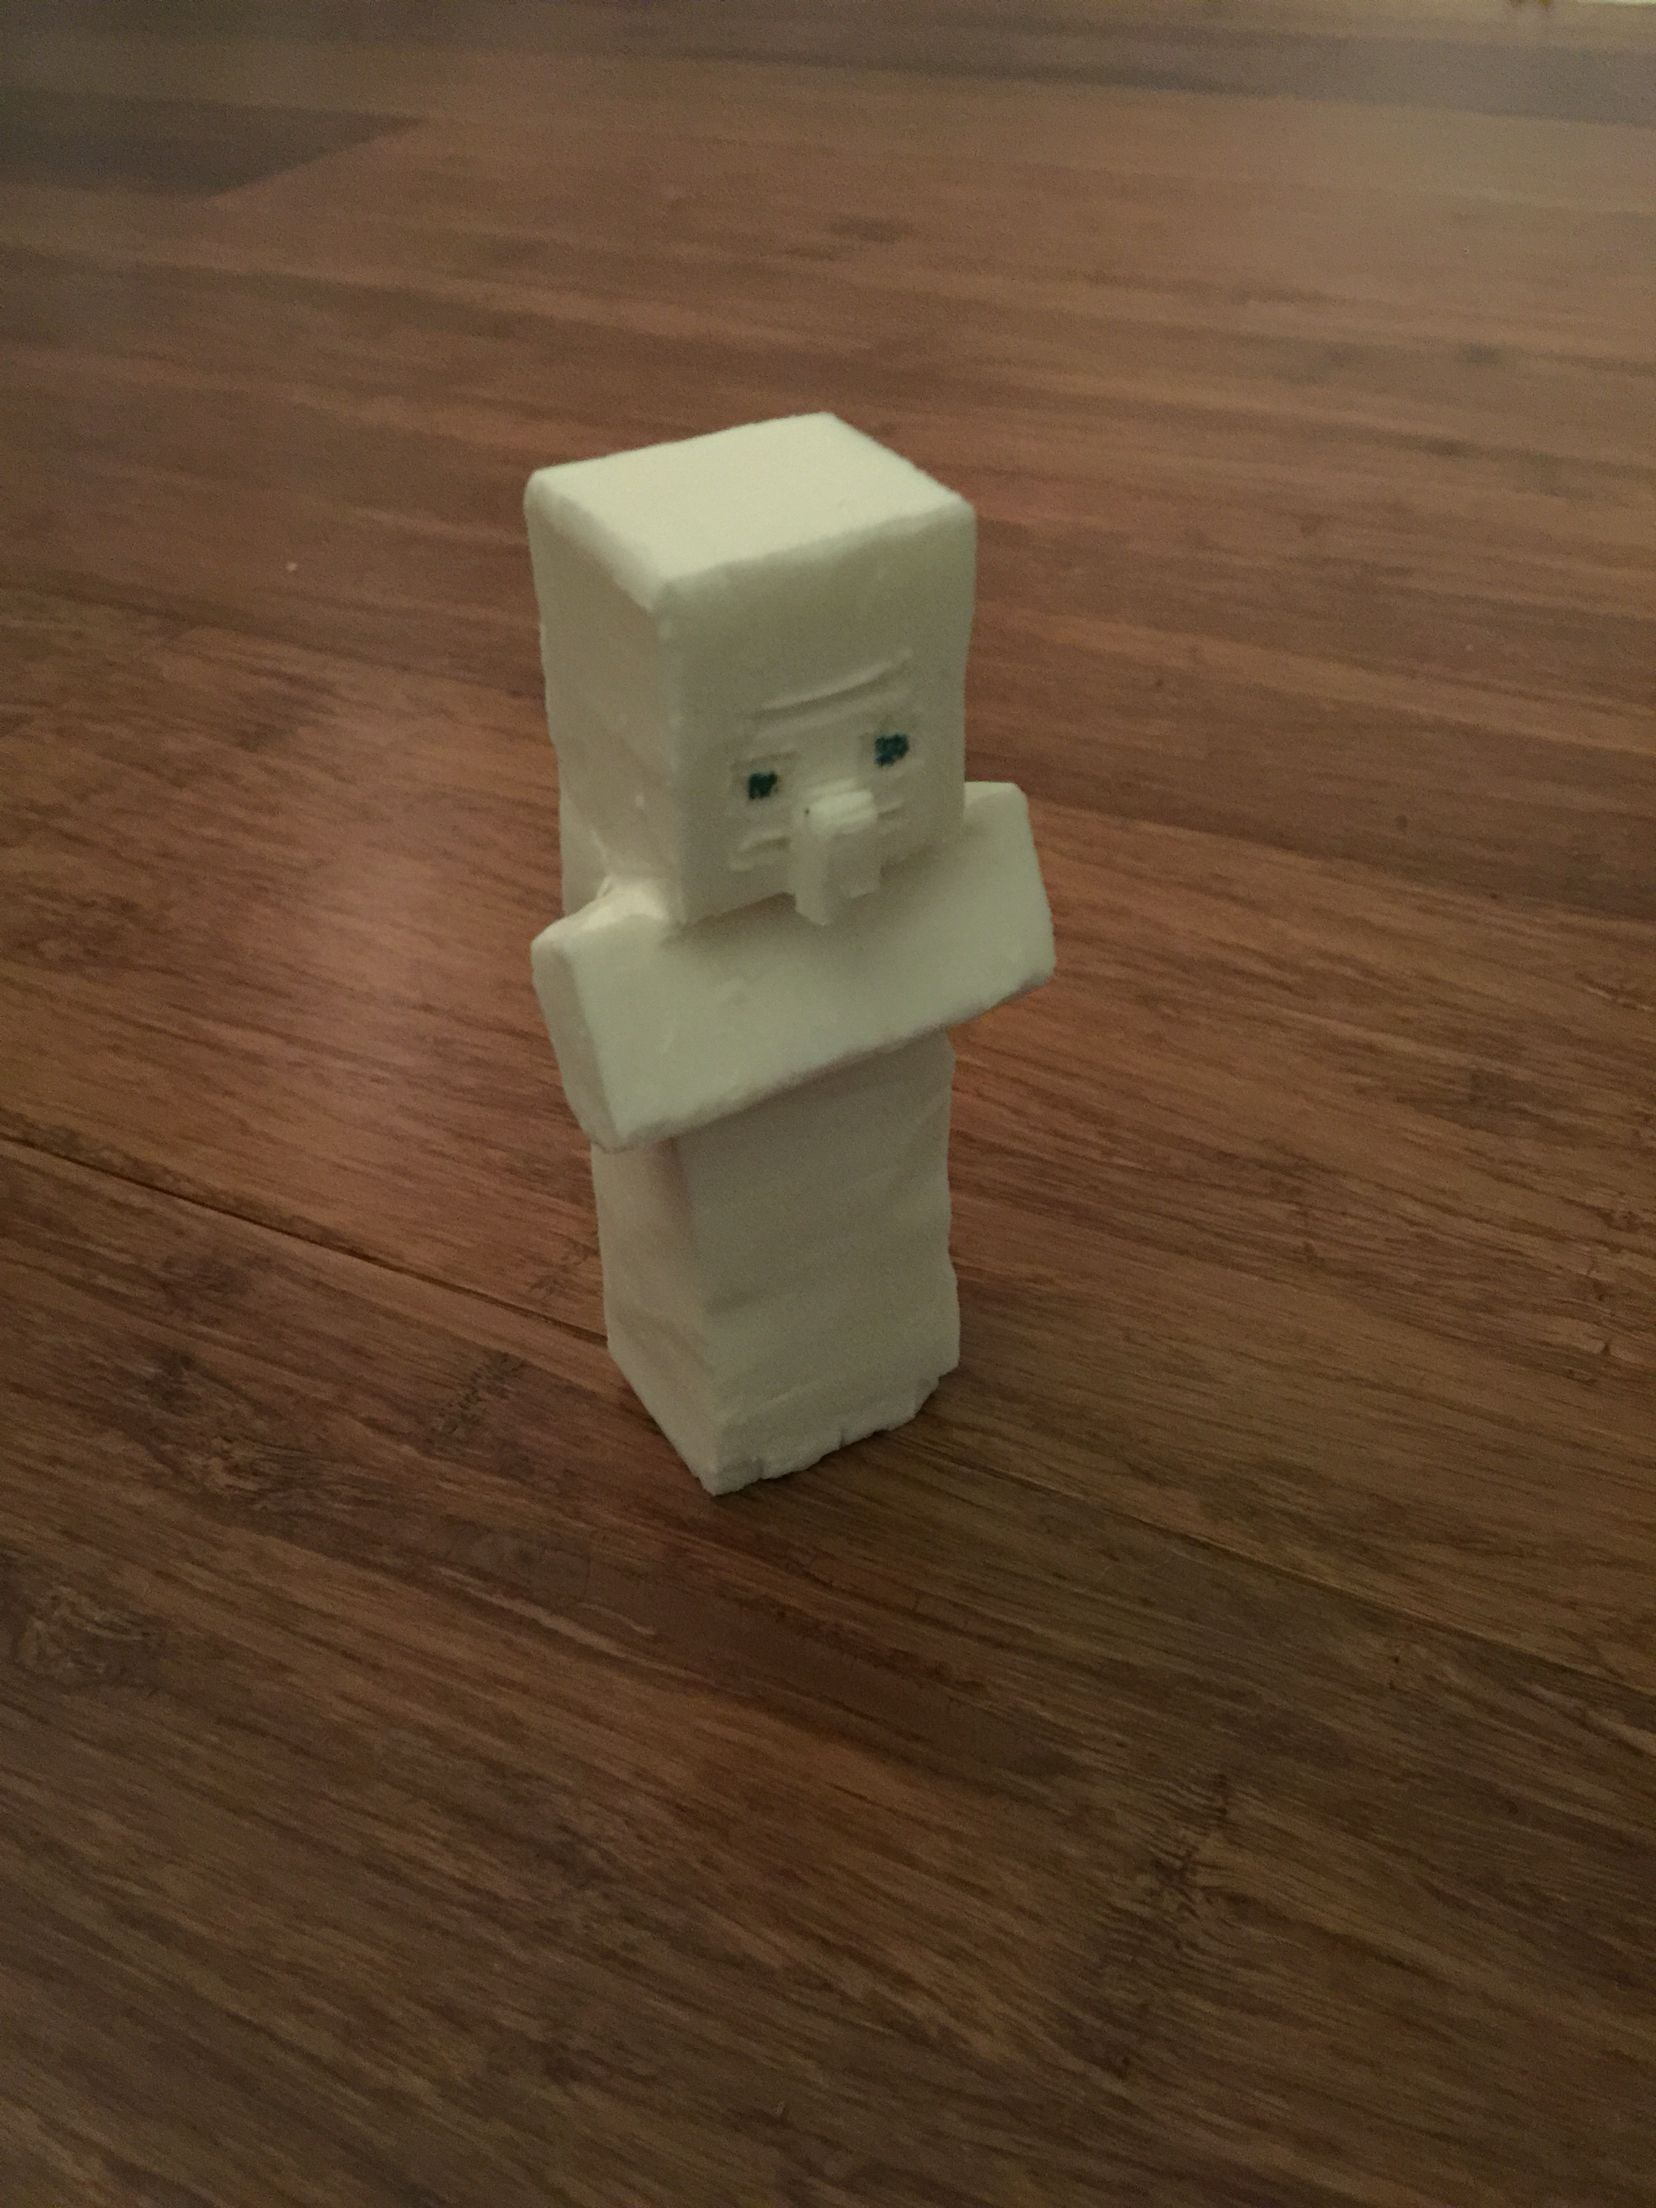 Bear cub scout ivory bar minecraft villager get kids